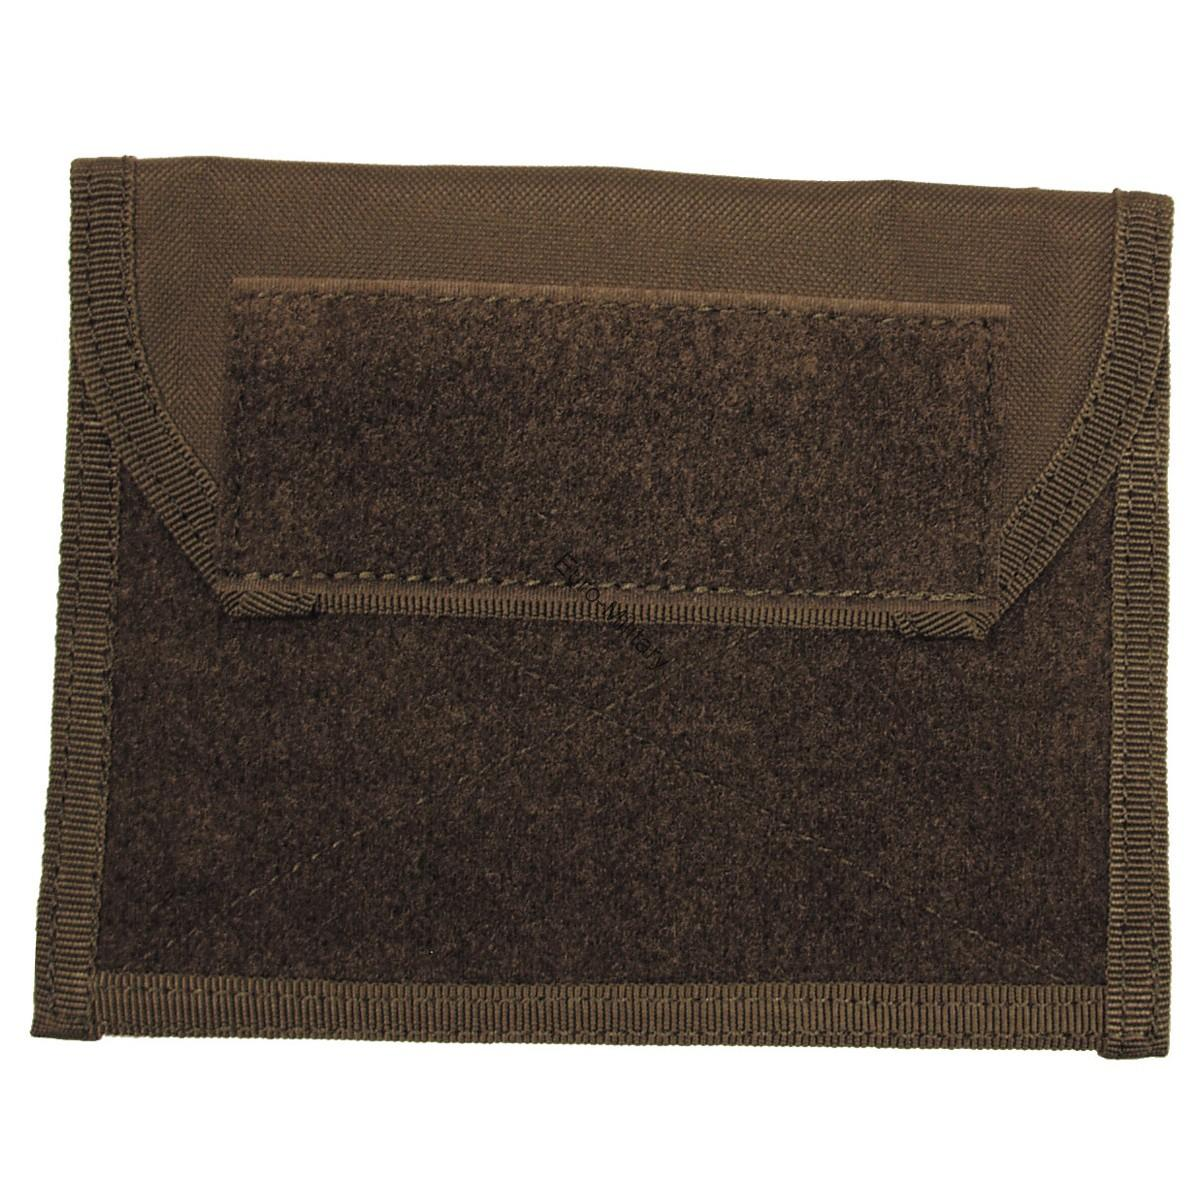 Tactical Admin Chest Molle Pouch w/ Velcro - OD Green